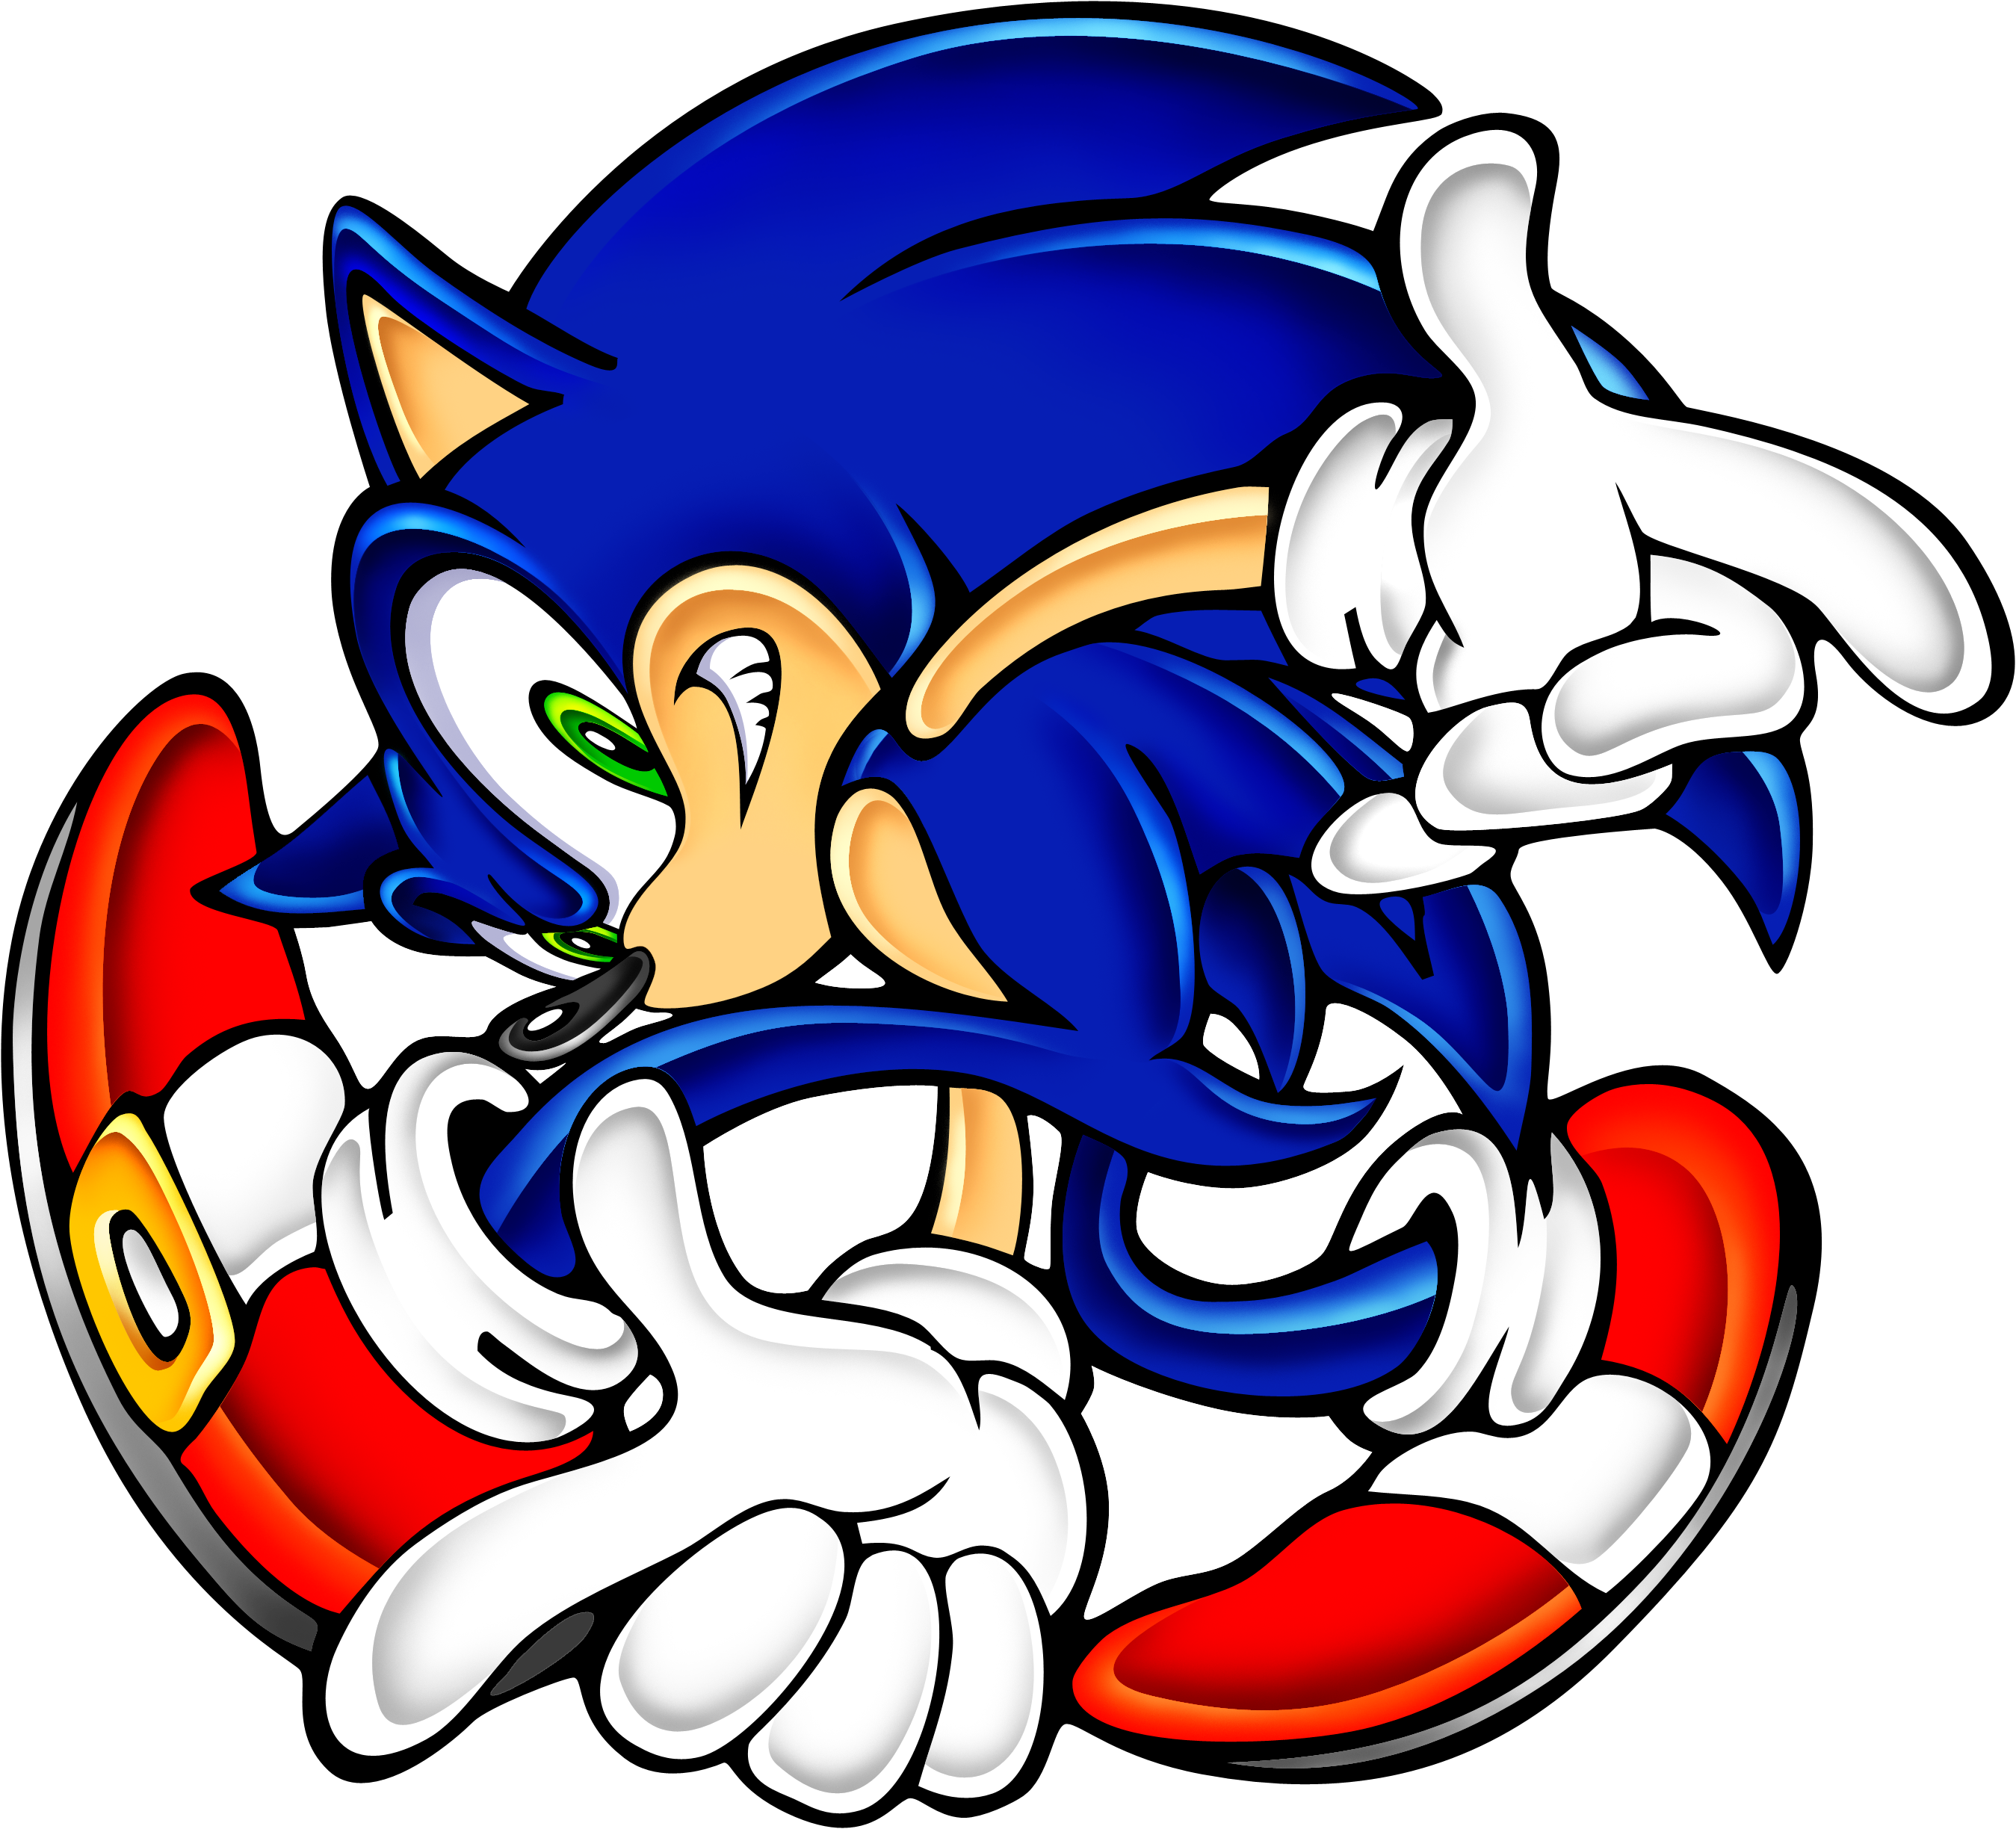 Sonic adventure png. Image gemscollectionplus news network